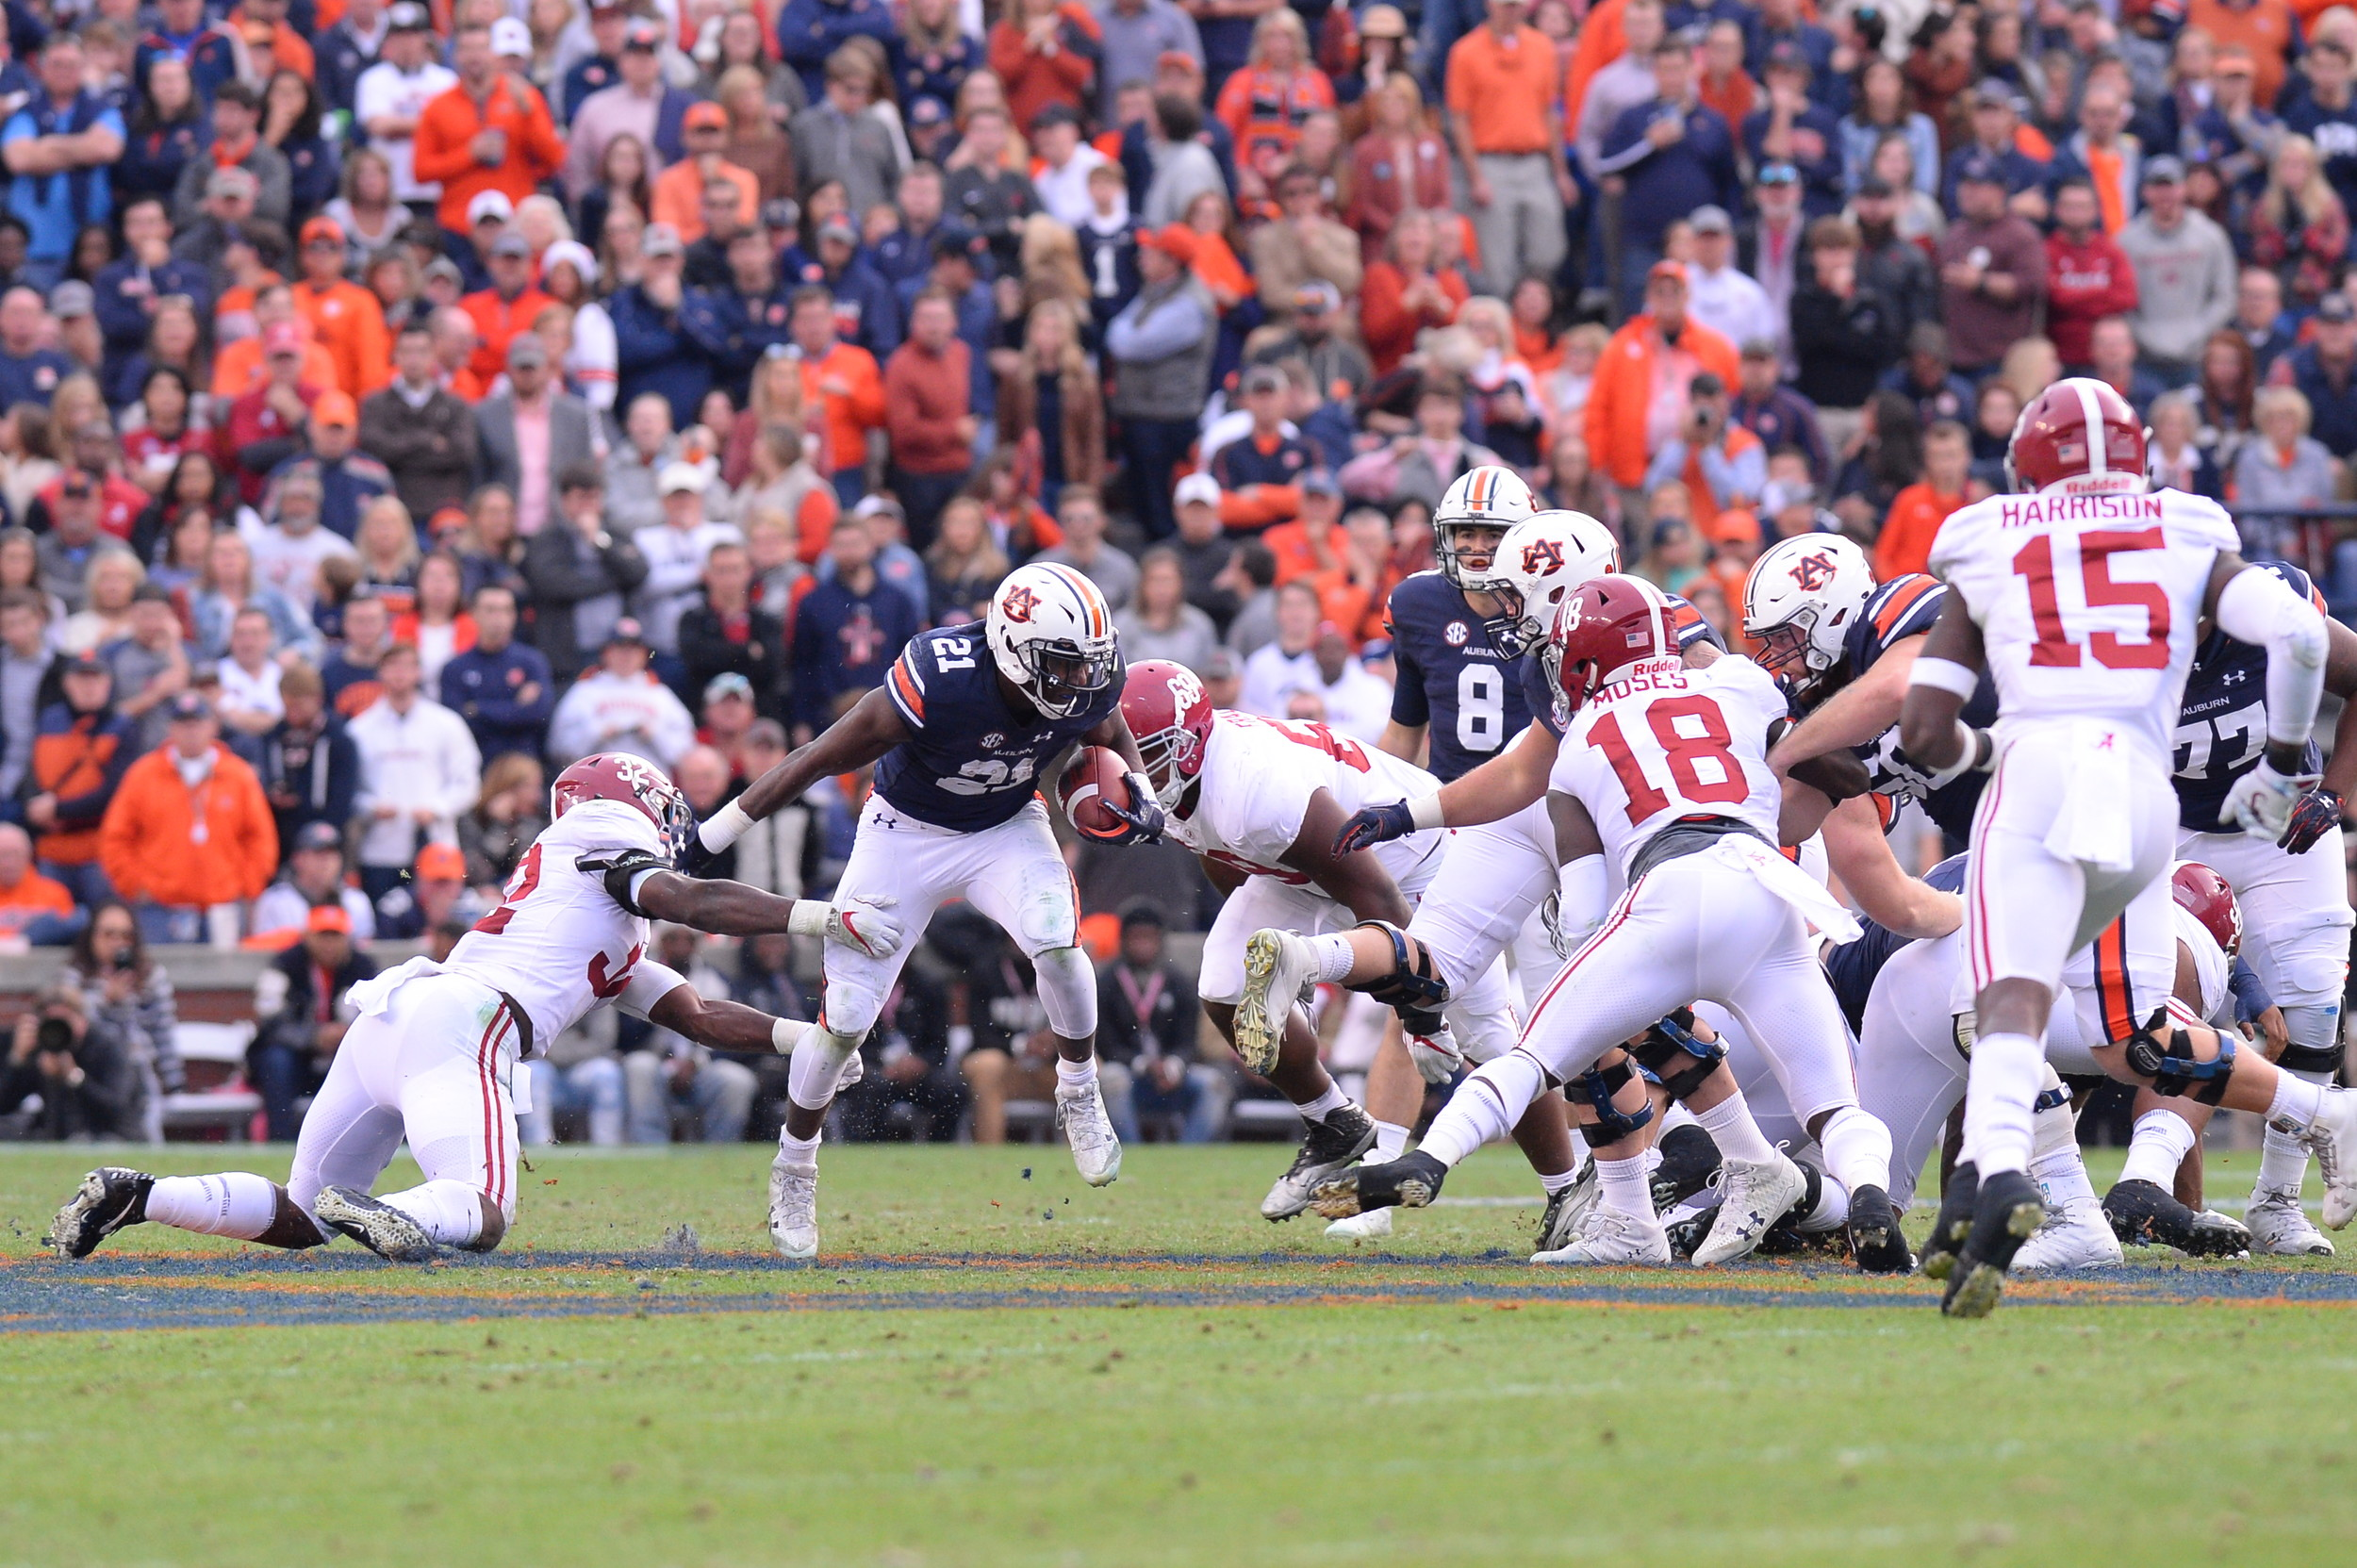 Auburn Tigers running back Kerryon Johnson (21) looks for an opening in the first half of the NCAA football game between the Alabama Crimson Tide and the Auburn Tigers on Nov. 25, 2017, at Jordan-Hare Stadium in Auburn, Ala. (Photo by Jeff Johnsey)